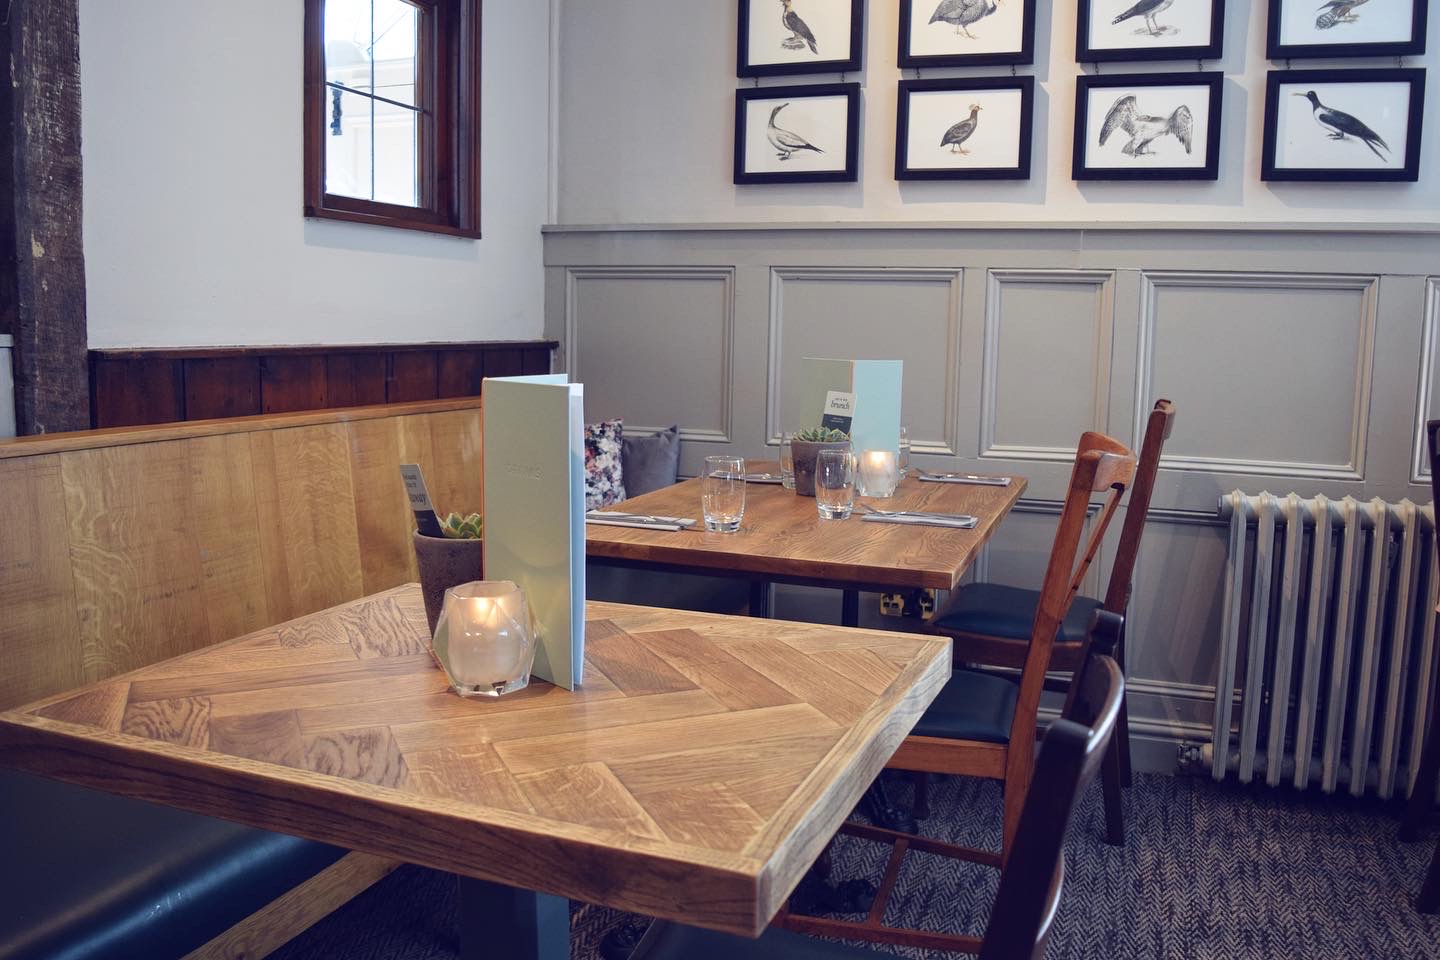 Review of The Curlew in Parley